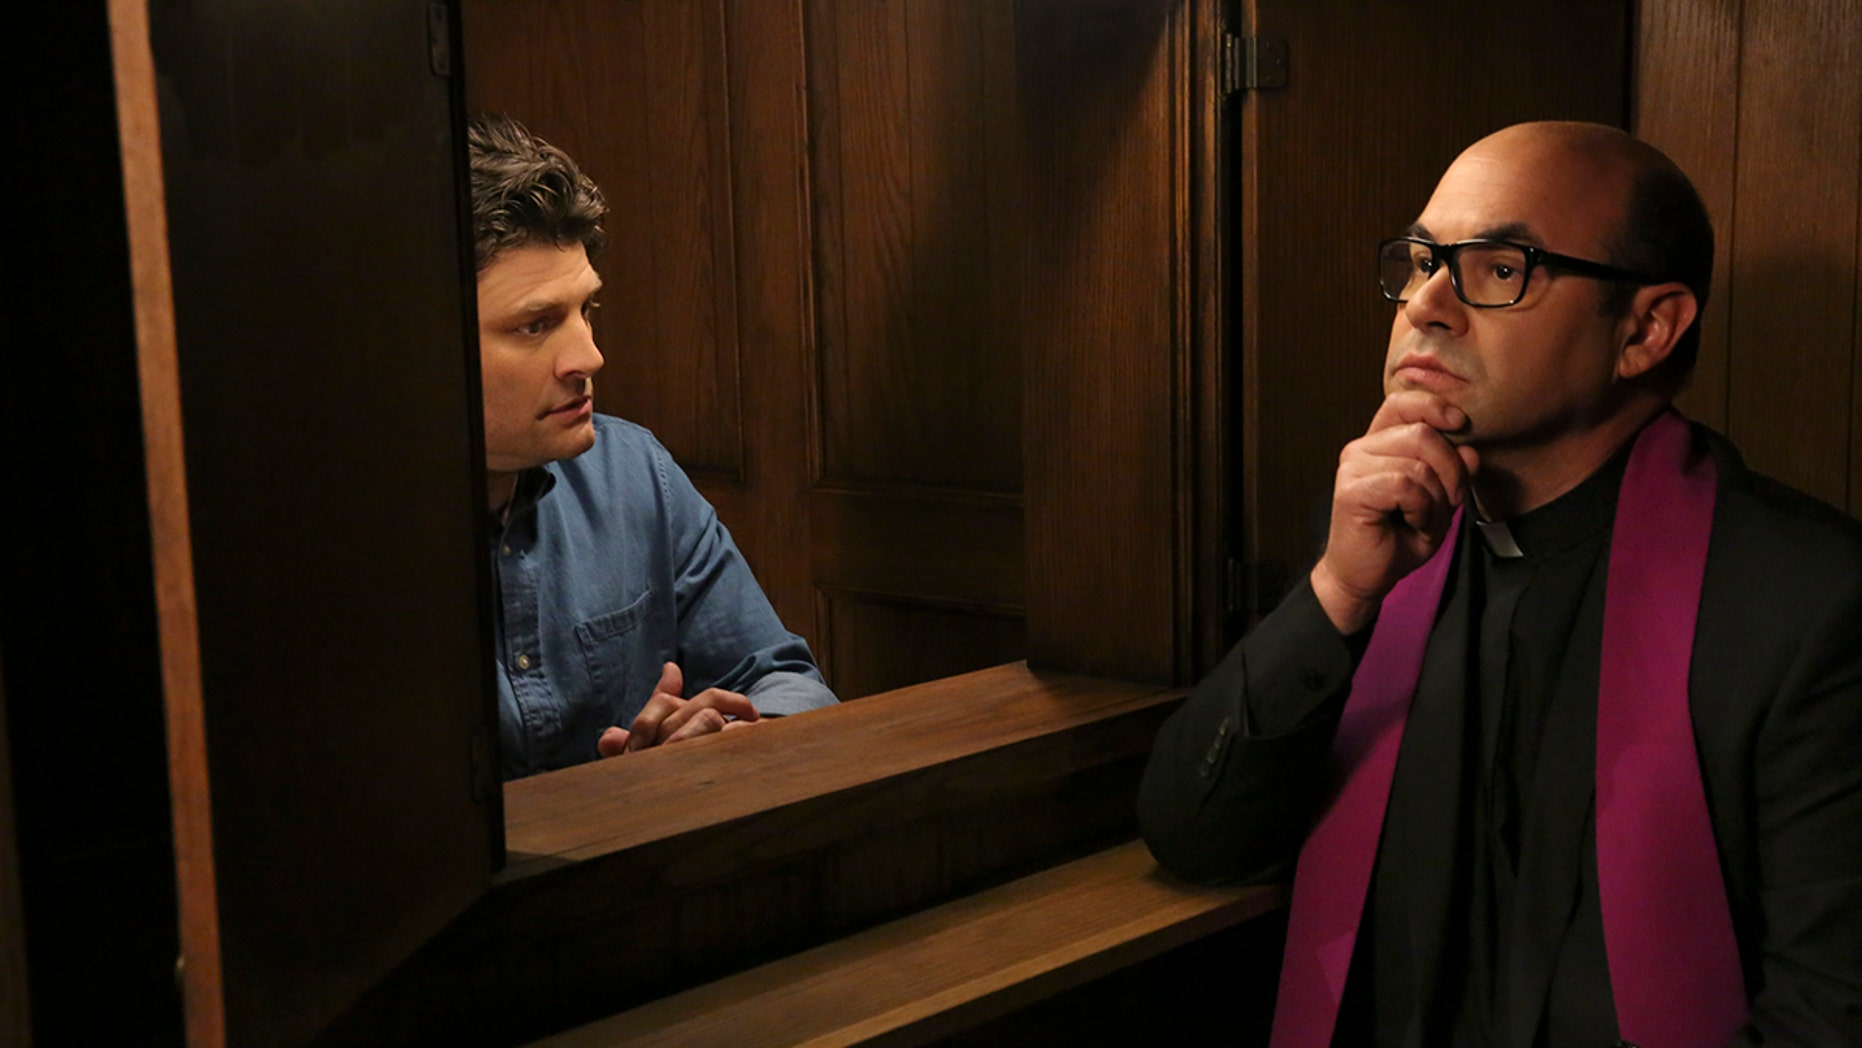 Pilot -- Upon learning that Lesley is expecting, Chip goes to the bookstore seeking parenting guidance, and stumbles upon a bible which inspires him to begin living strictly by the book, on the series premiere of LIVING BIBLICALLY, Monday, Feb 26 (9:30-10:00 PM, ET/PT) on the CBS Television Network.  Pictured L-R: Jay R. Ferguson as Chip and Ian Gomez as Father Gene Photo: Michael Yarish/CBS ©2017 CBS Broadcasting, Inc. All Rights Reserved